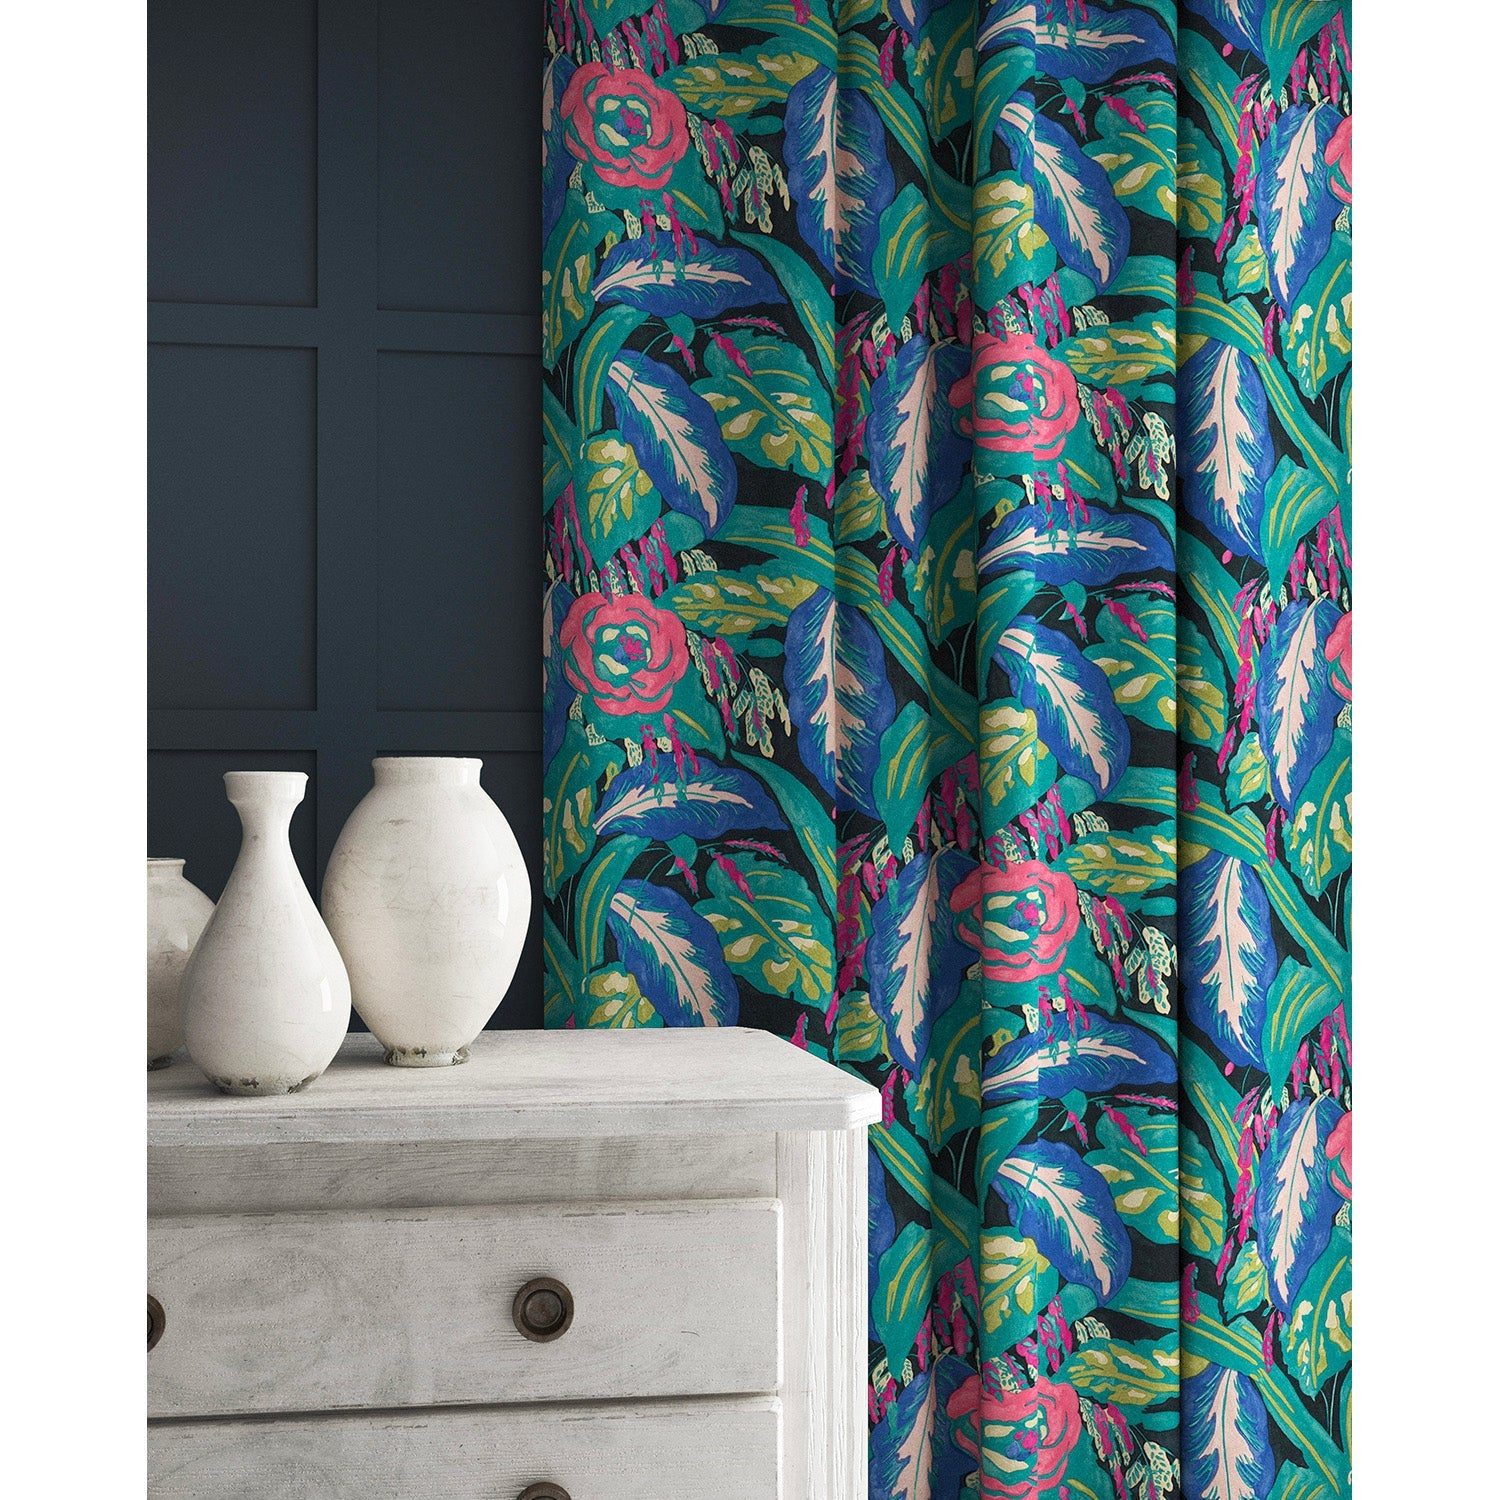 Velvet curtains in a purple and teal velvet floral fabric with a stain resistant finish